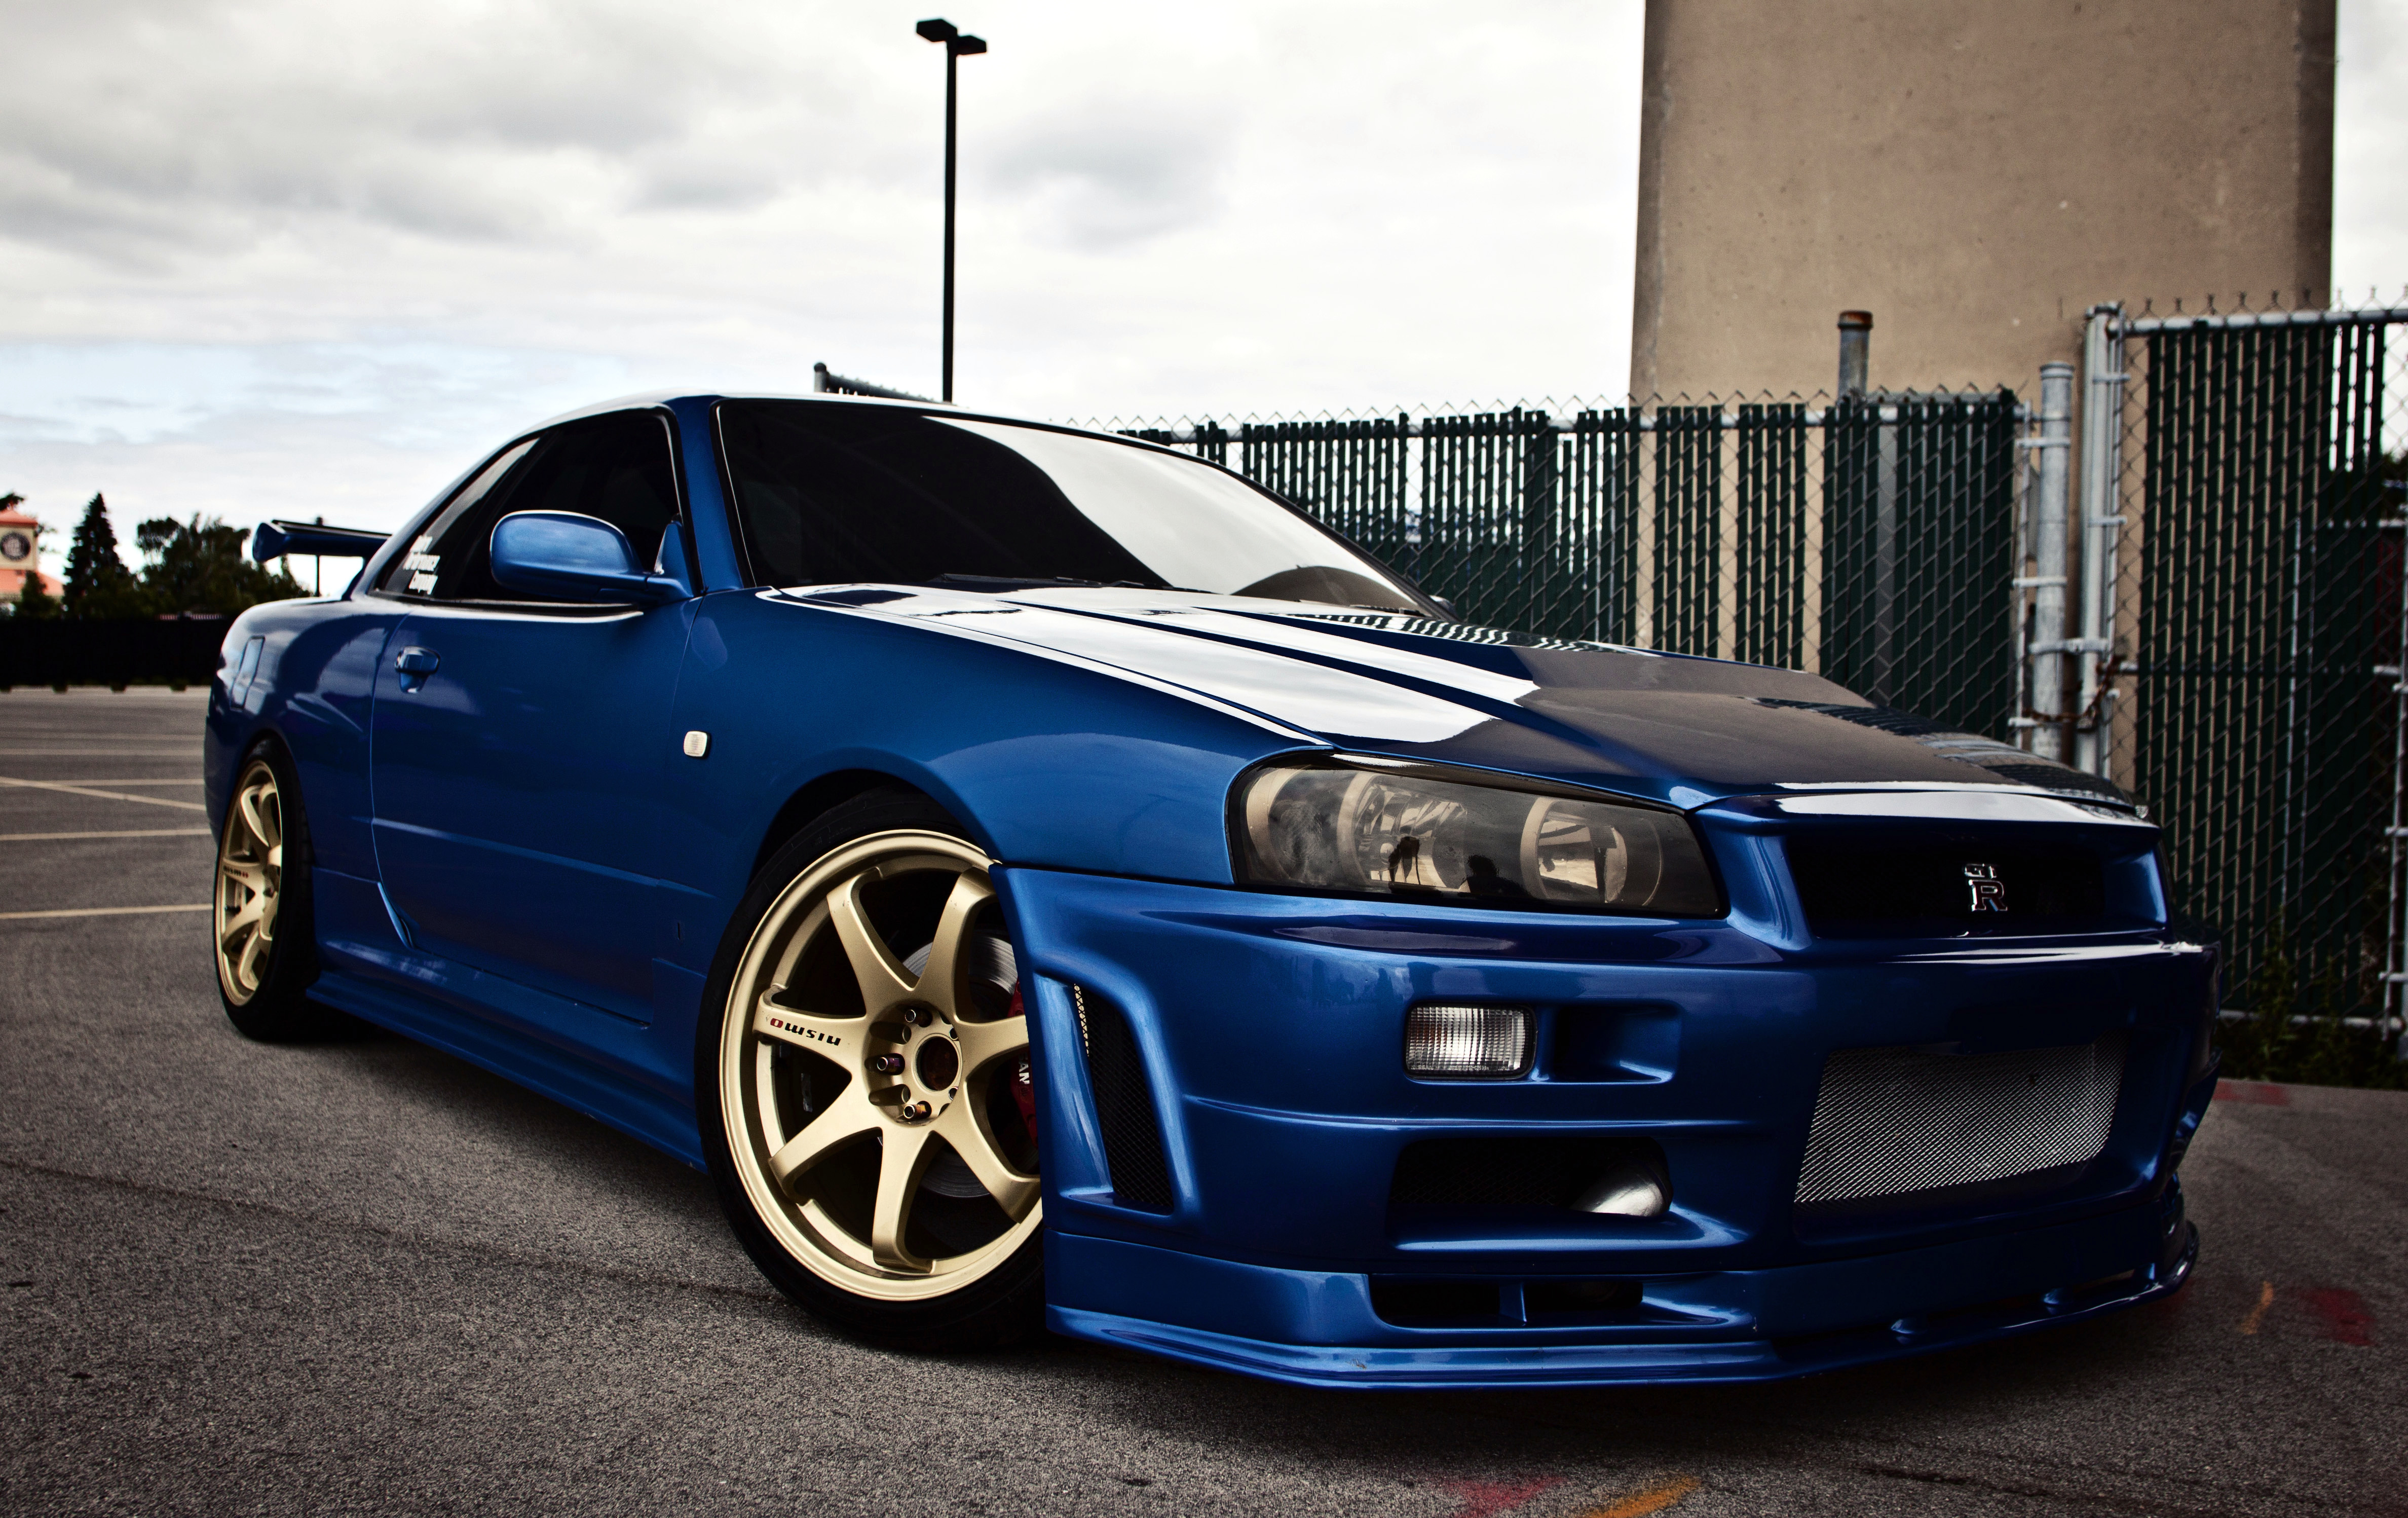 Wallpapers nissan skyline gtr r34 blue   car pictures and photos 4752x2995